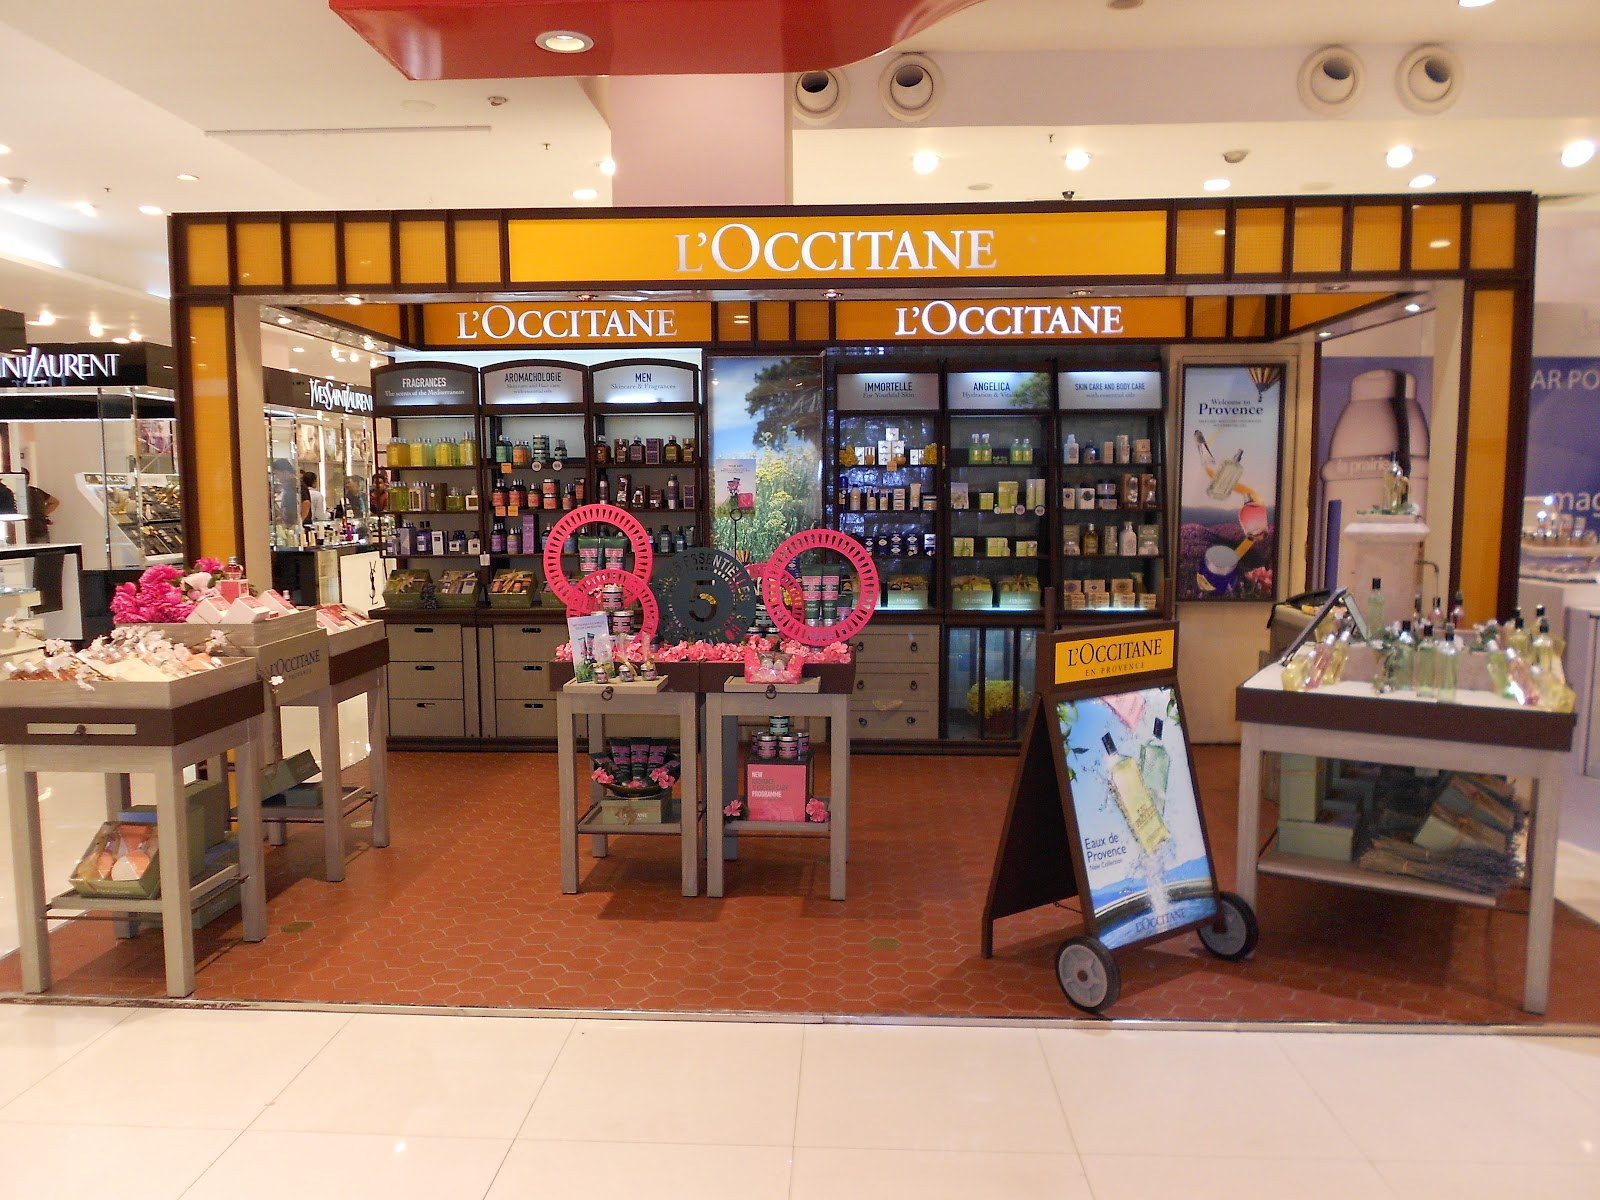 L'Occitane L'Occitane stores in Palo Alto CA - Hours, locations and phones Find here all the L'Occitane stores in Palo Alto CA. To access the details of the store (locations, store hours, website and current deals) click on the location or the store name. More information from L'Occitane.